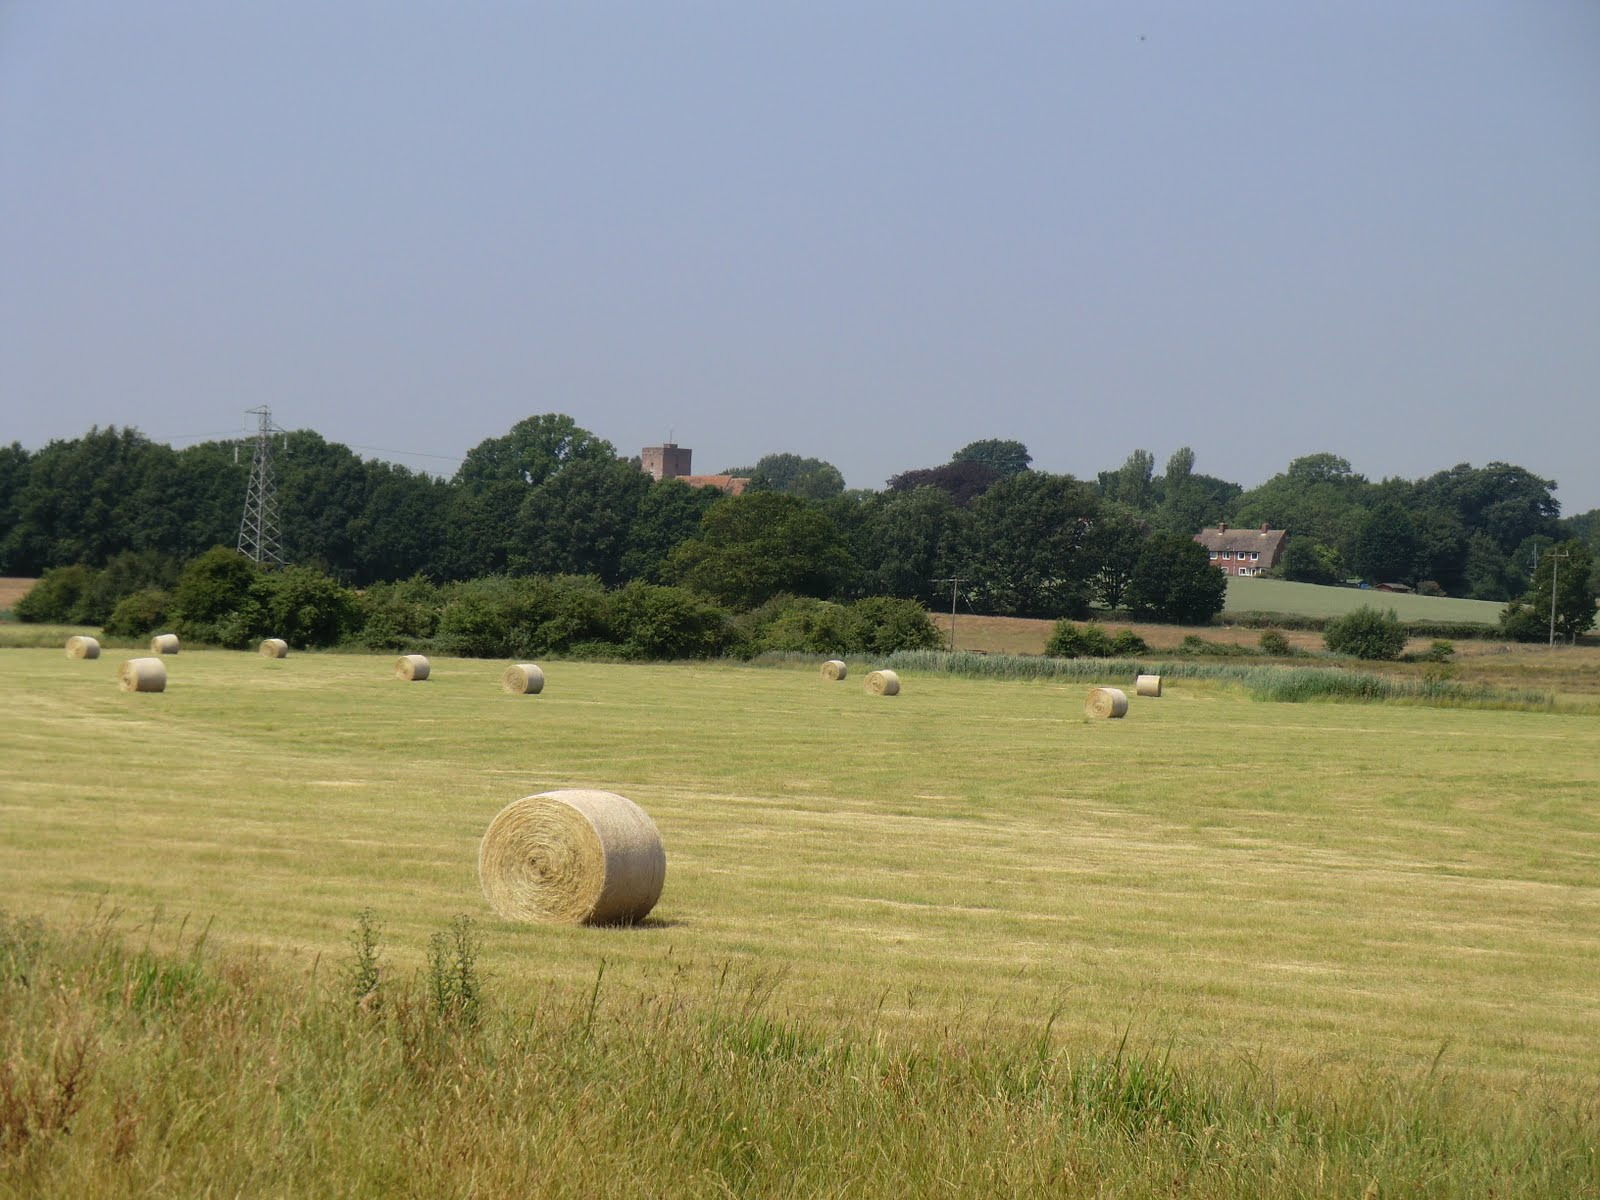 CIMG7987 Bales of hay and Warehorne church